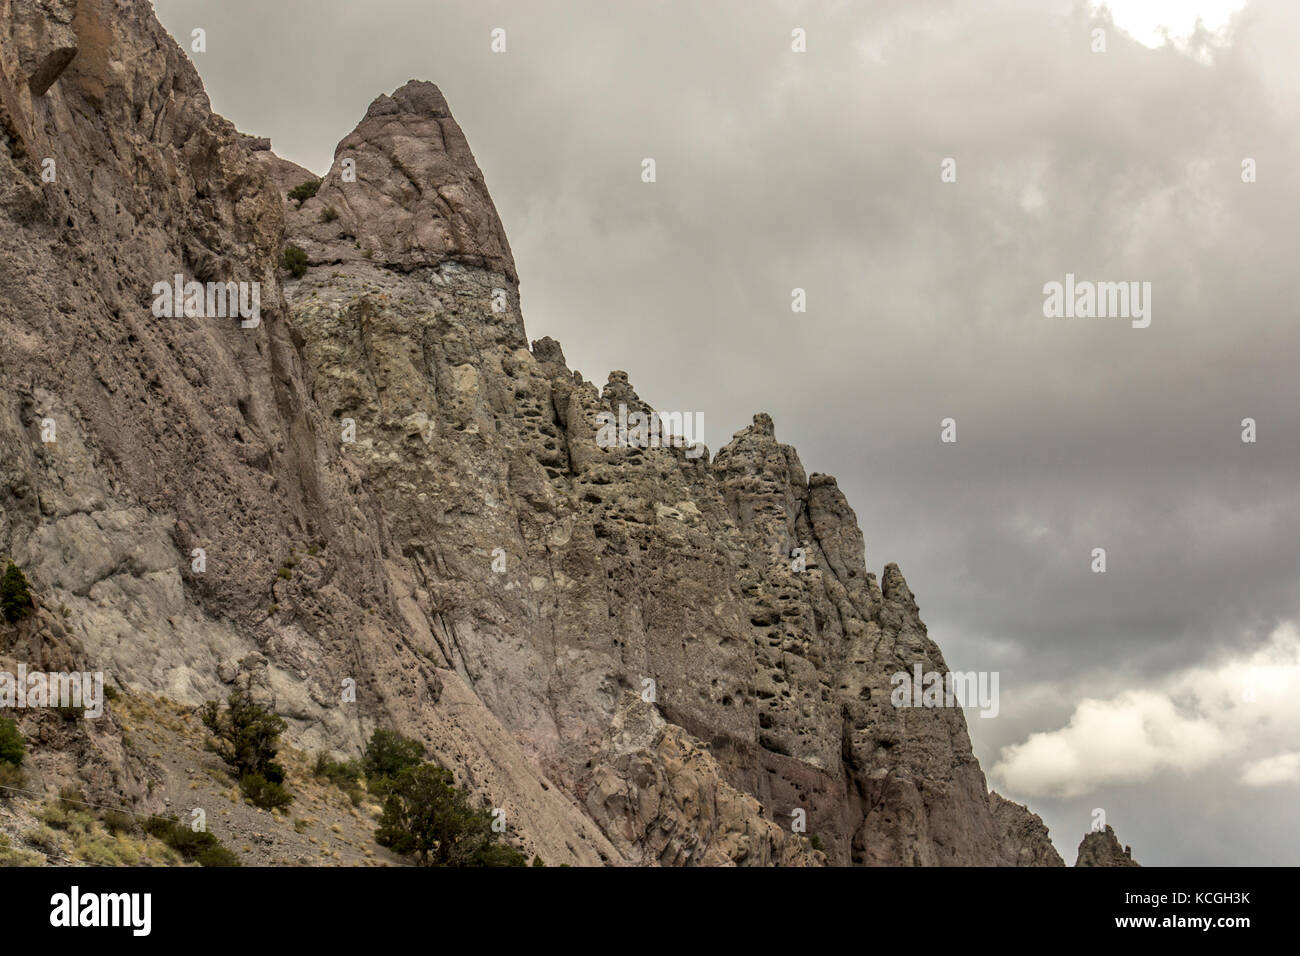 Primitive rock formations in the middle of Utah. - Stock Image